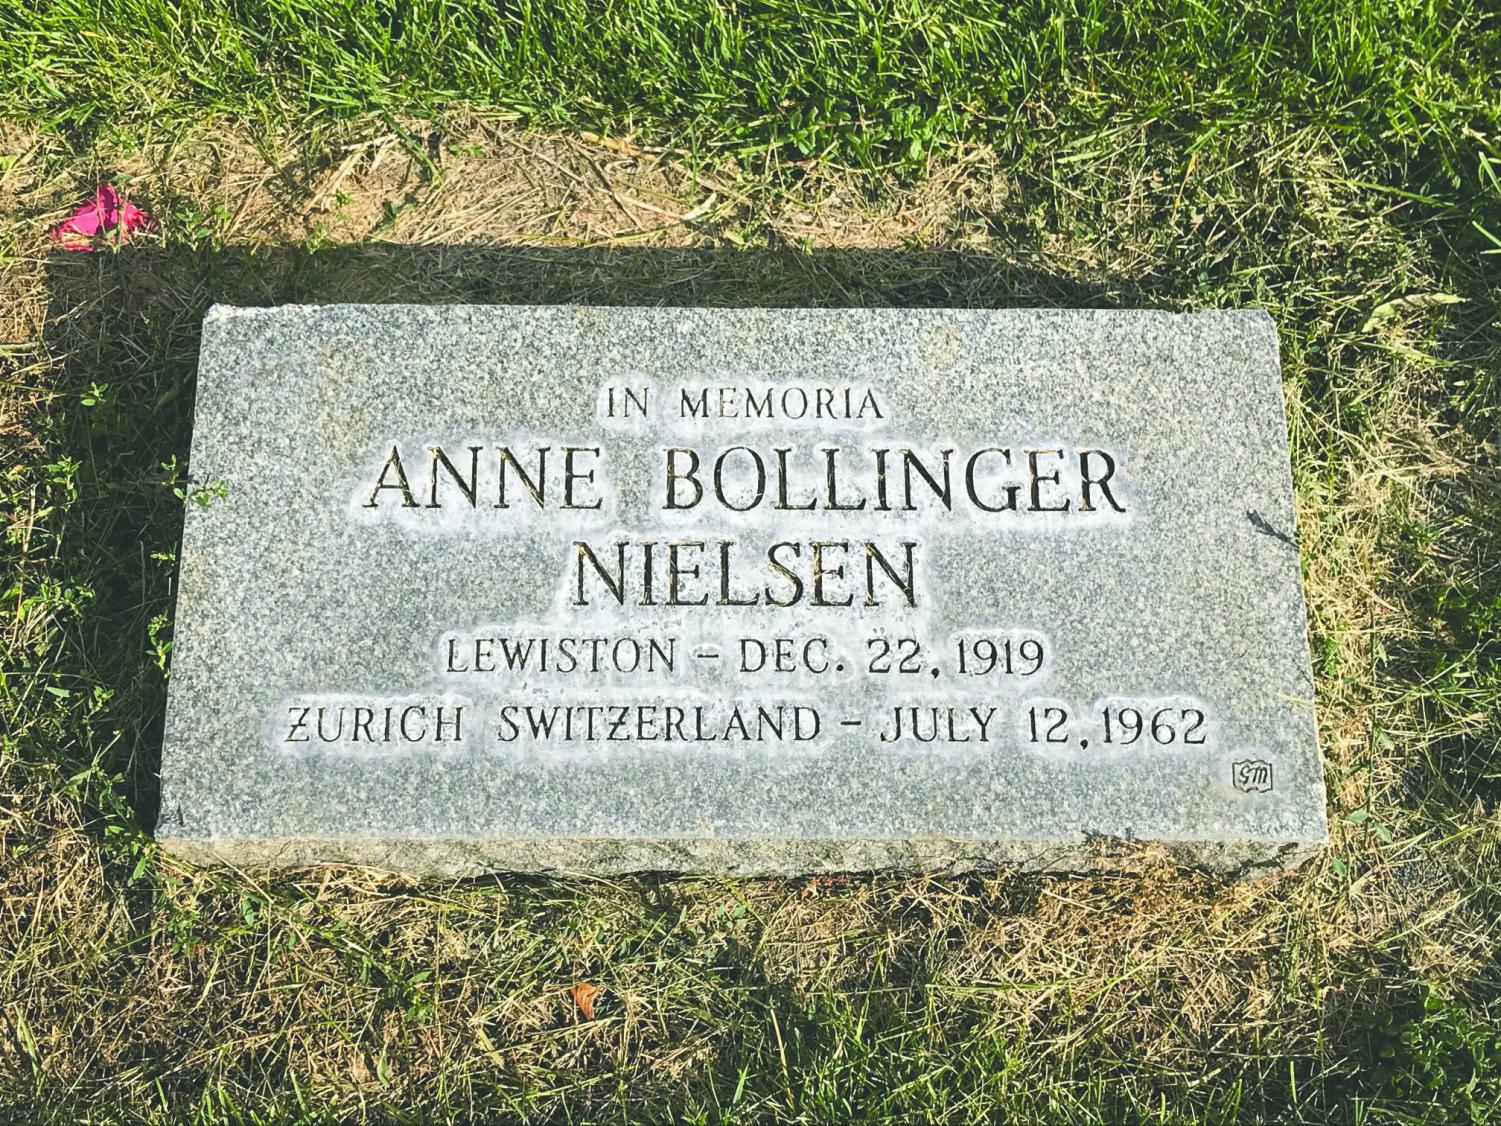 Anne Bollinger now rests in Lewiston's Normal Hill Cemetery. Photo by Josie Hafer.